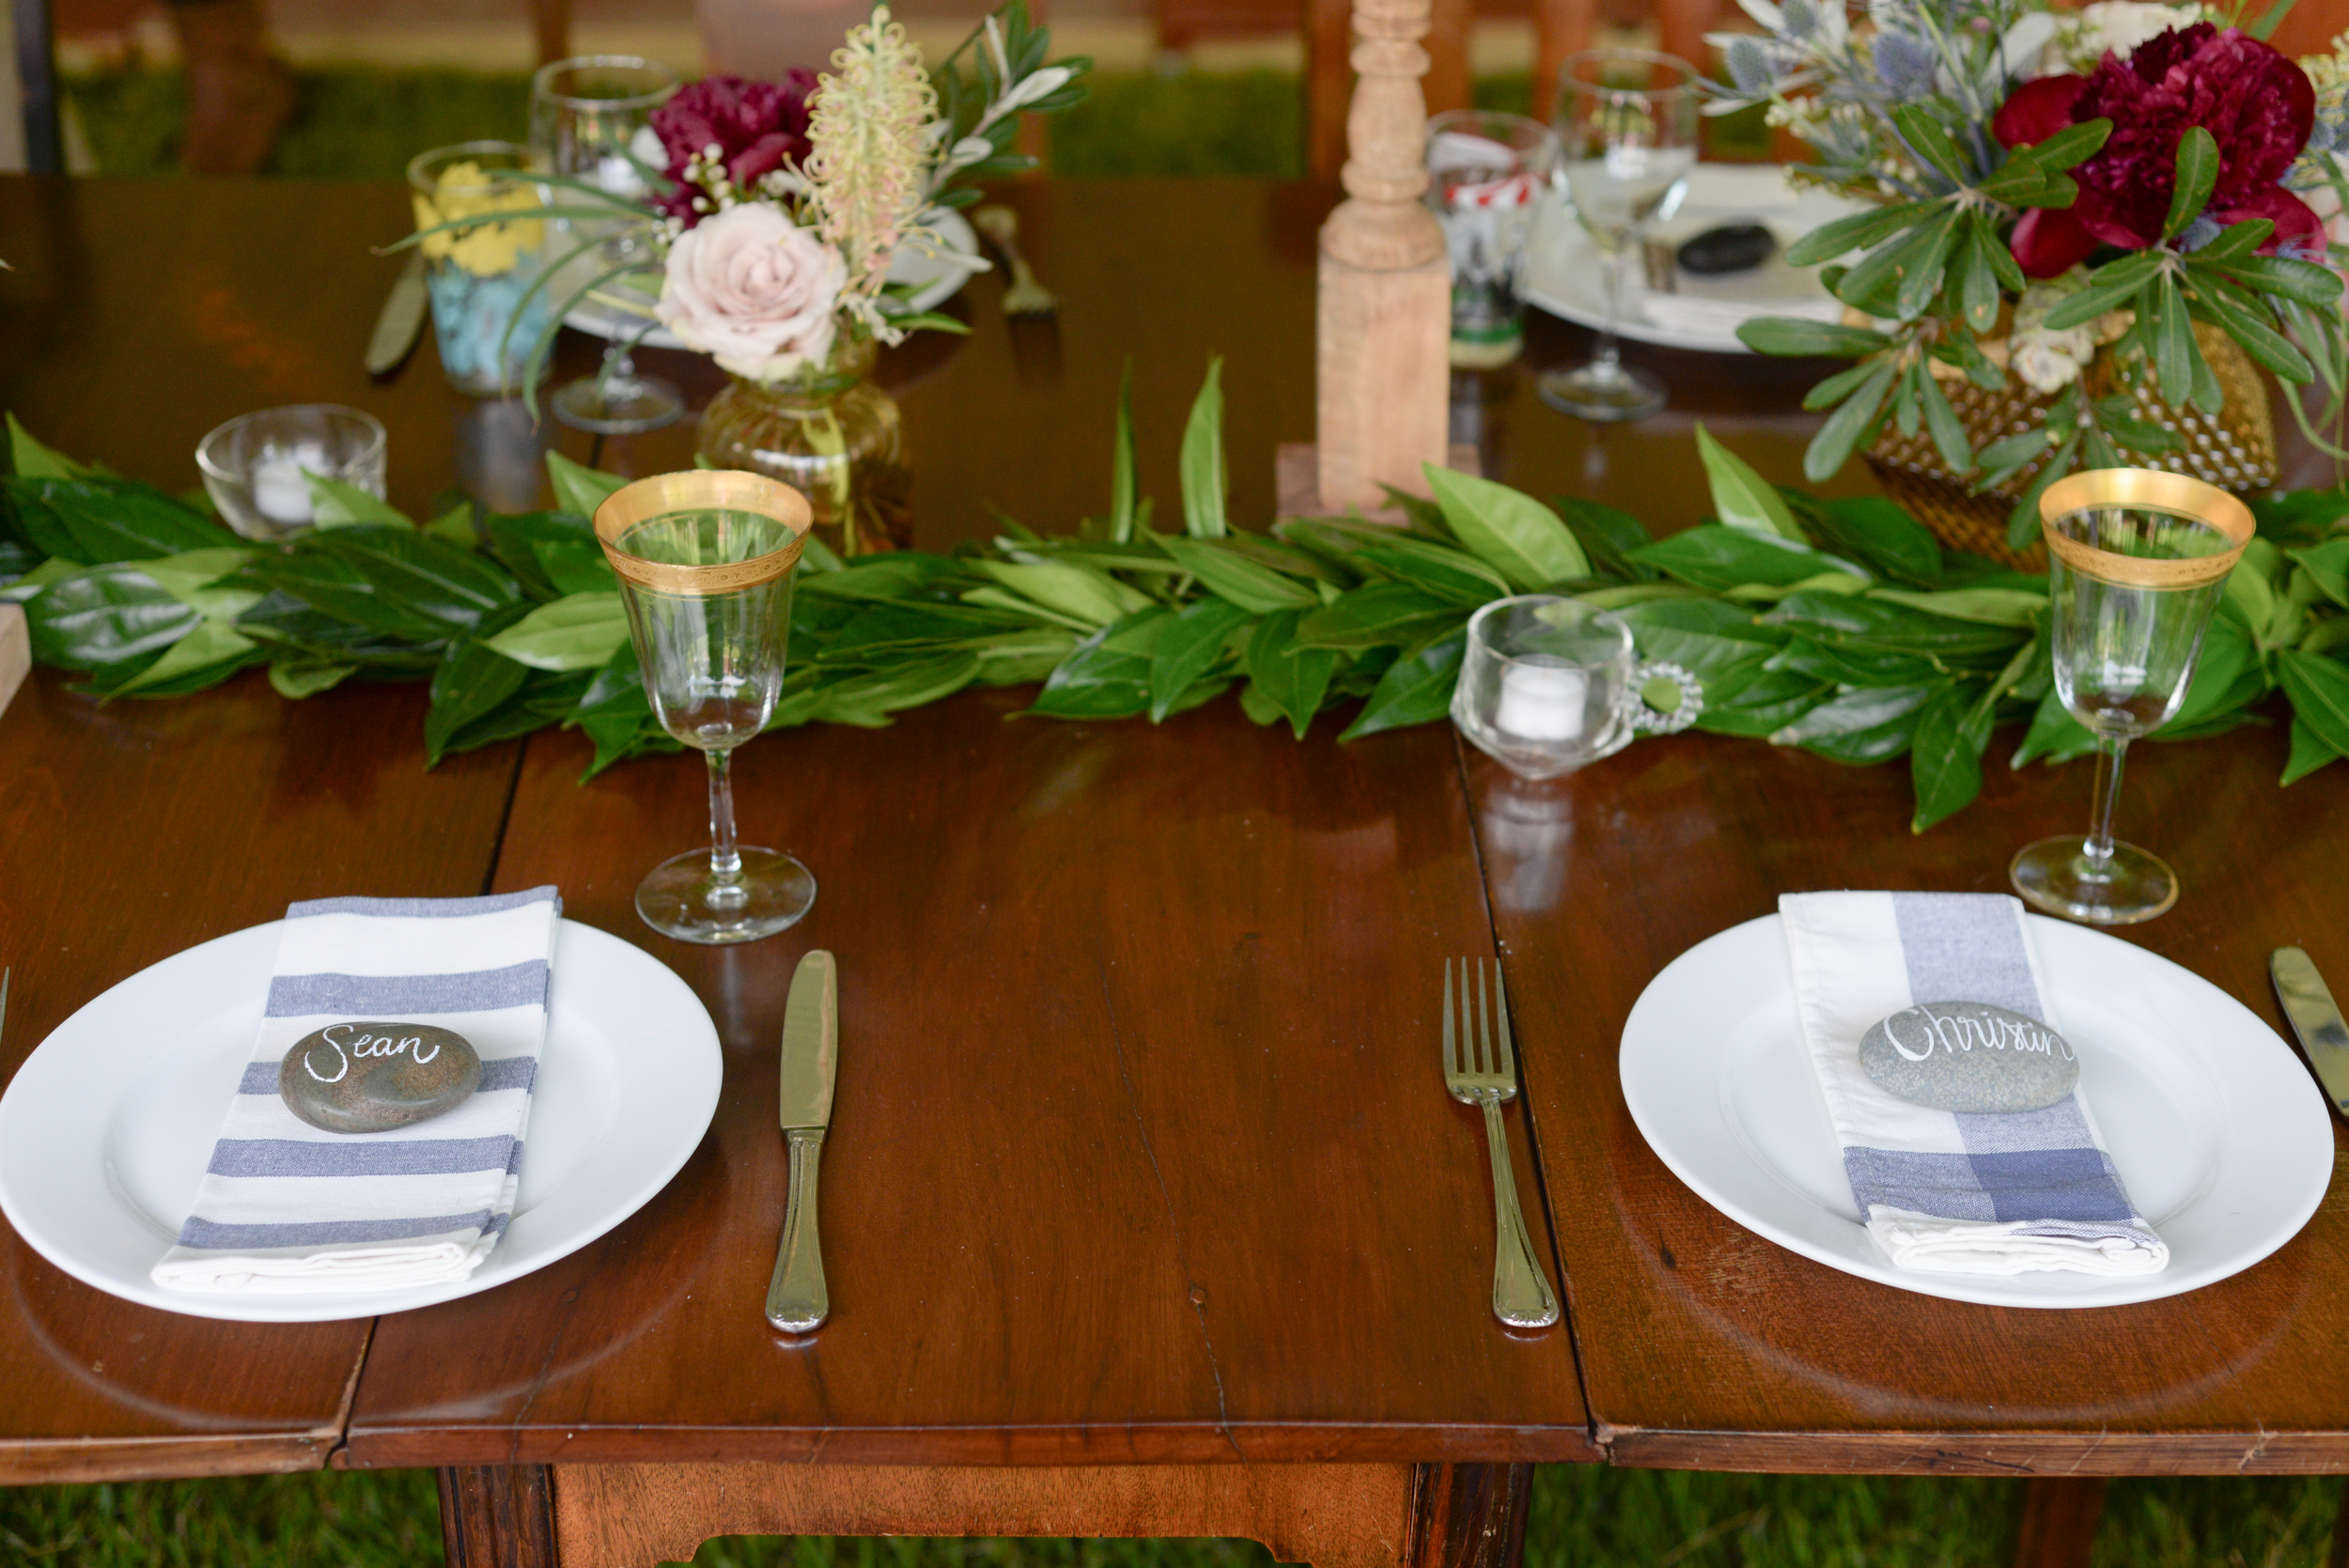 style altard st louis wedding place settings